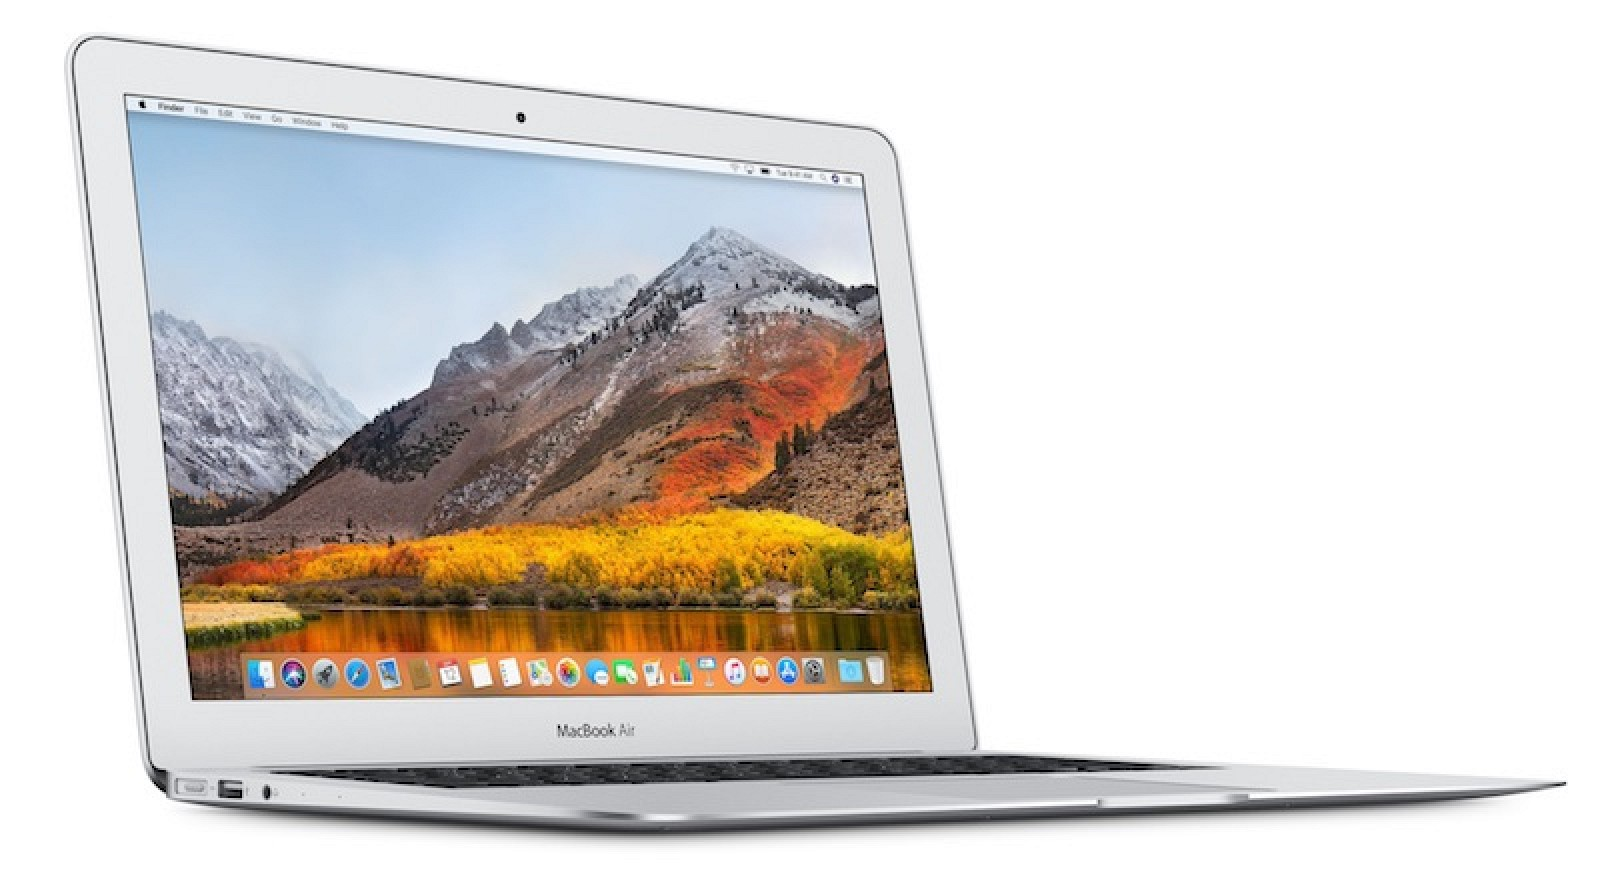 photo image New Entry-Level Mac Notebook Expected to Adopt Retina Display, Likely Launch at WWDC in June